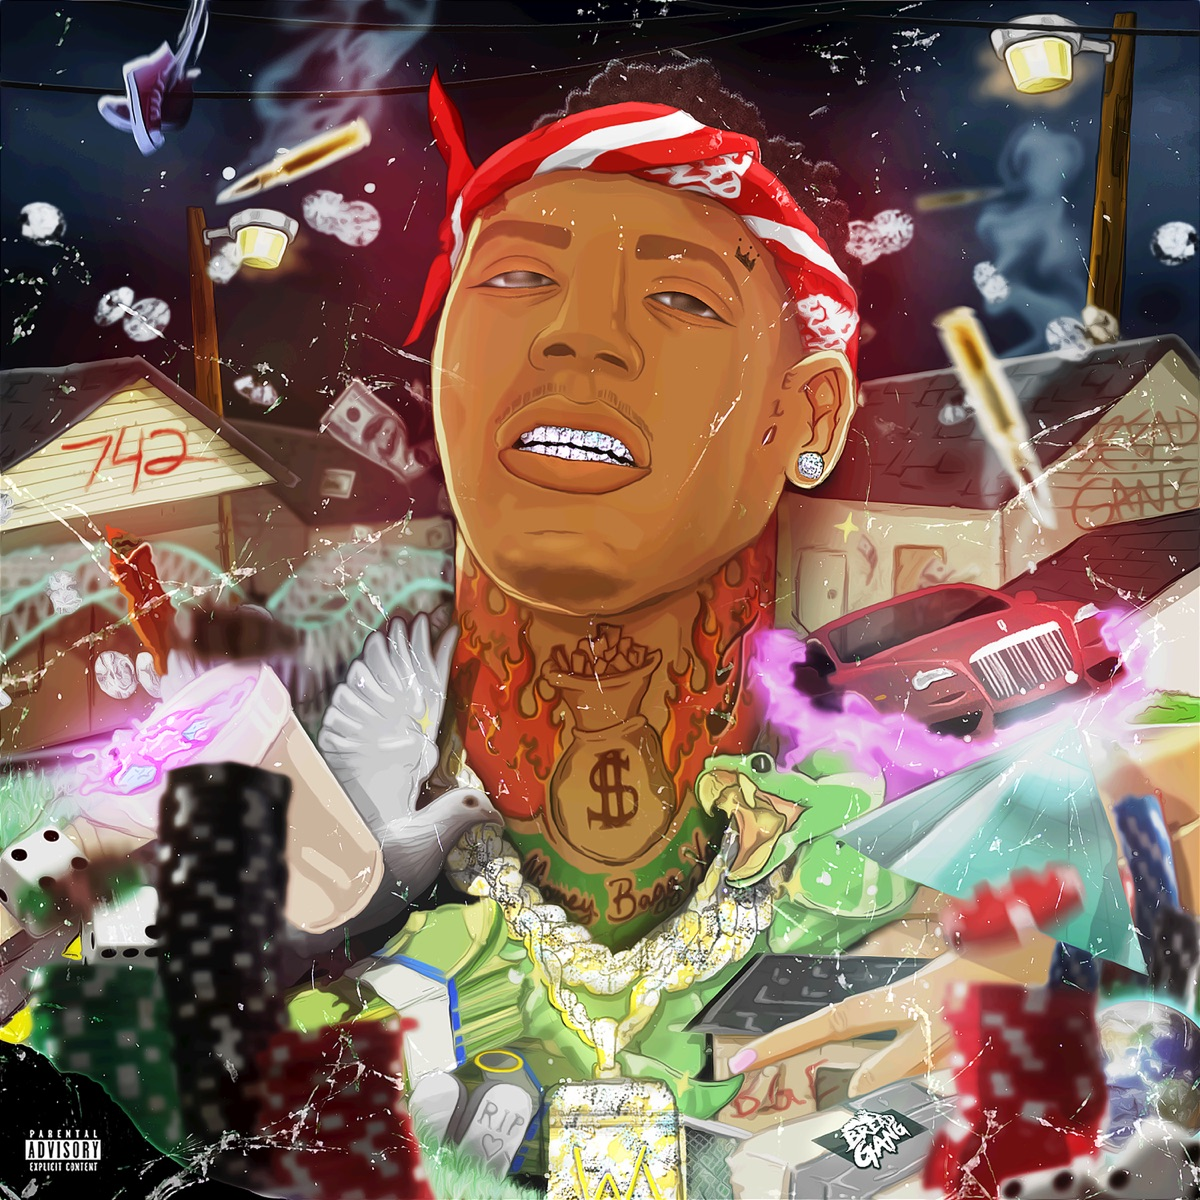 Bet On Me Album Cover By Moneybagg Yo